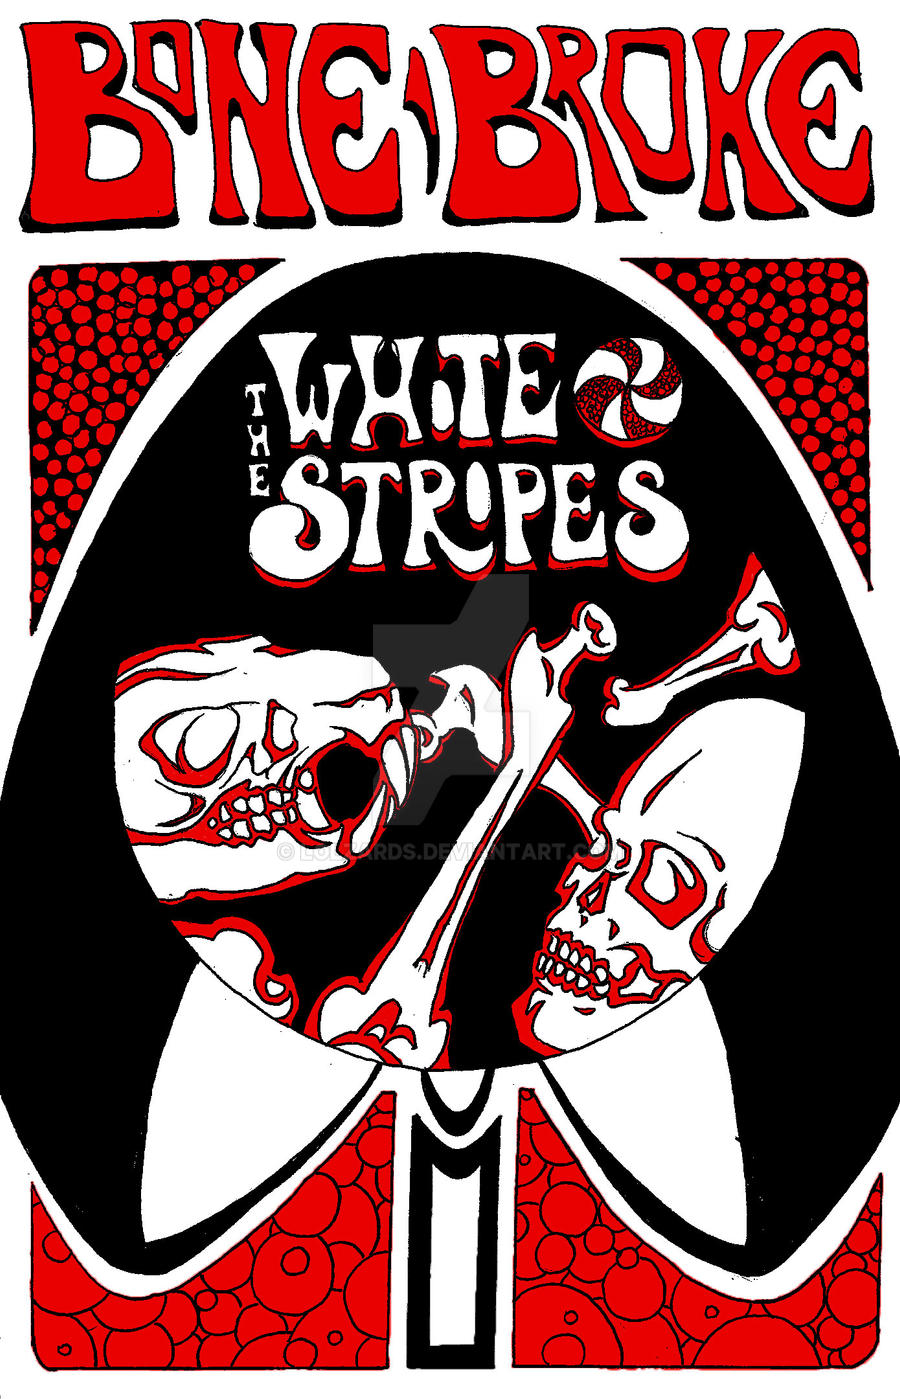 White stripes band logo